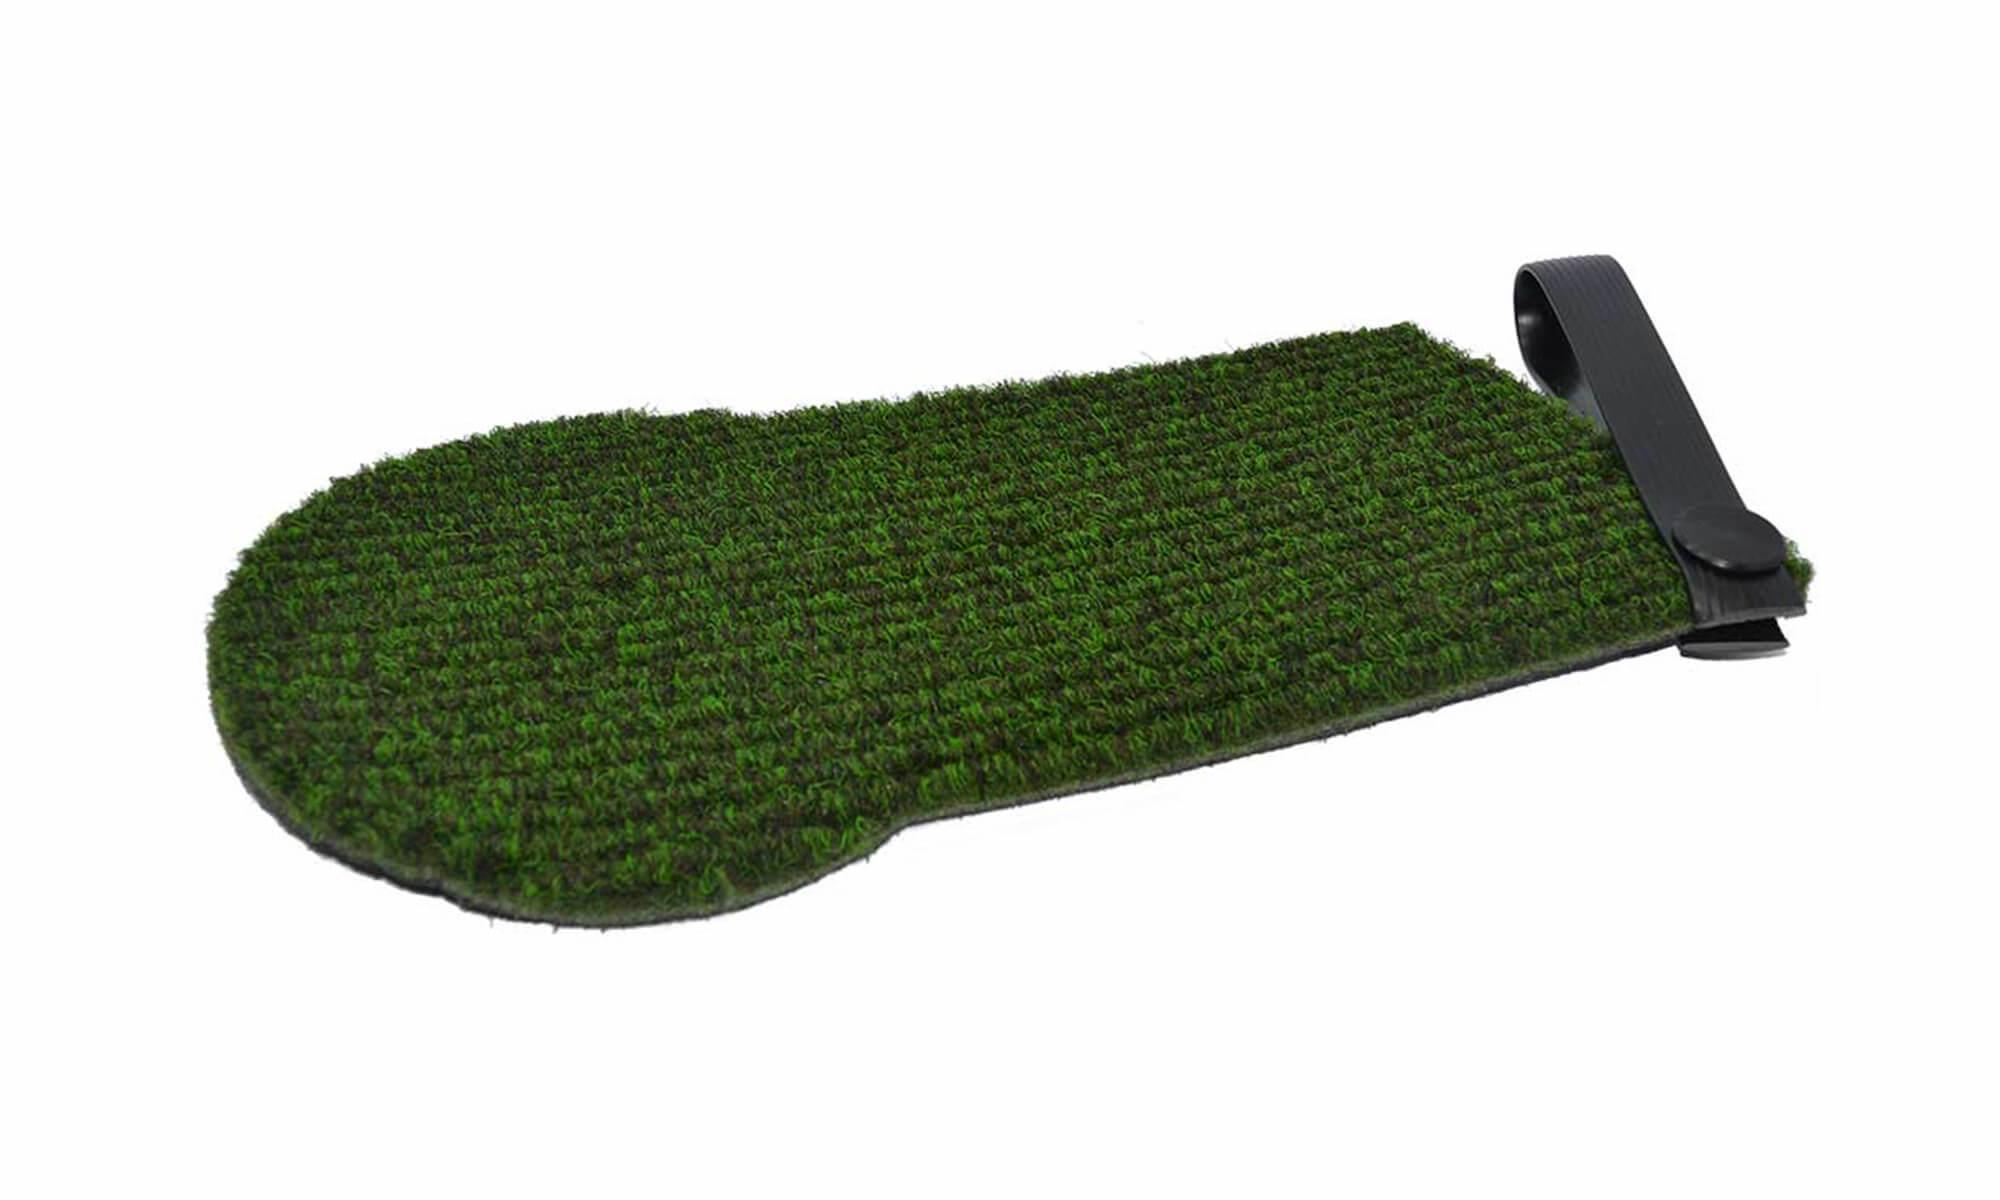 Carpet Style Winter Mat by Lazy Lawn